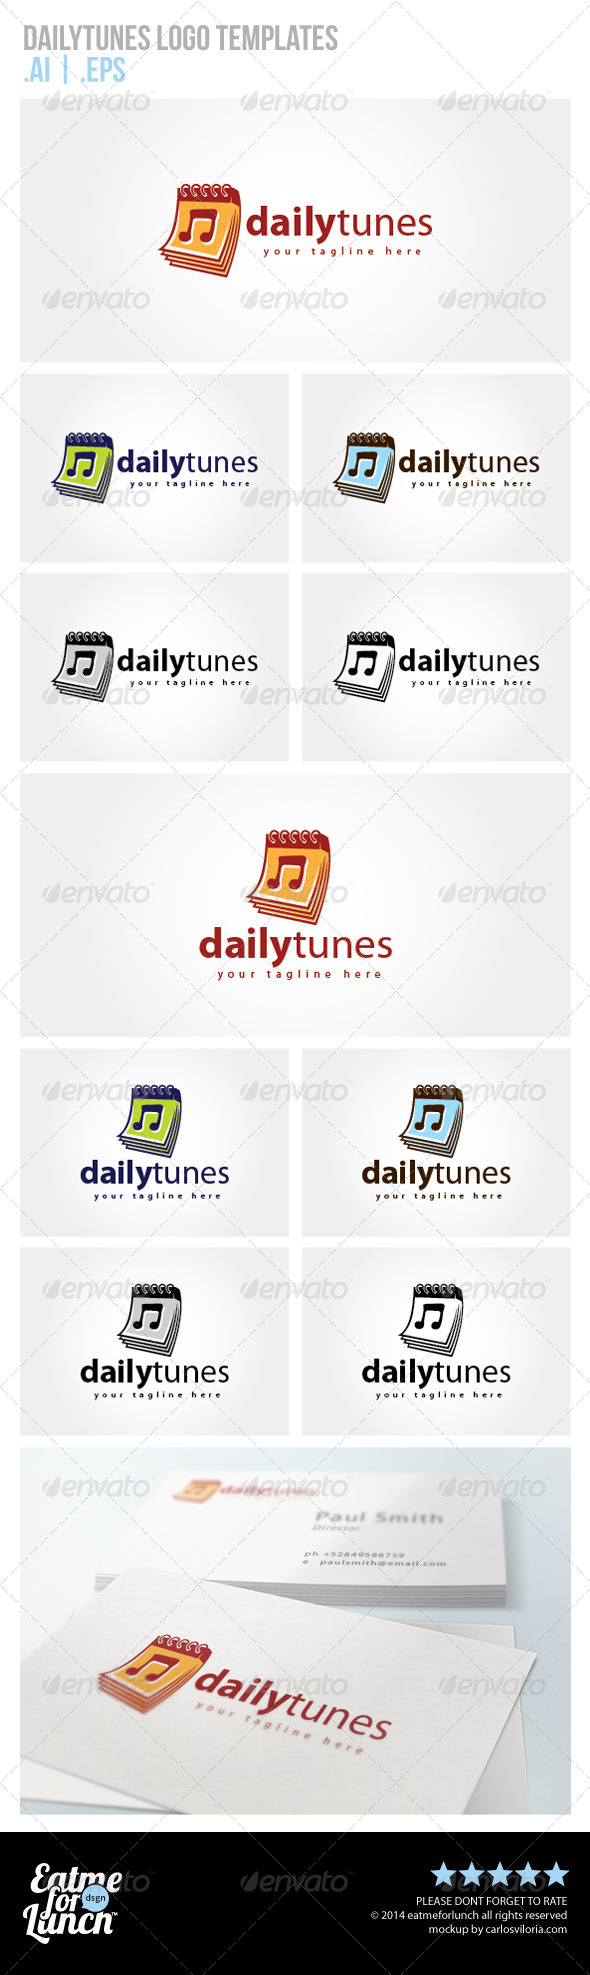 GraphicRiver Daily Tunes Logo Templates 6767797